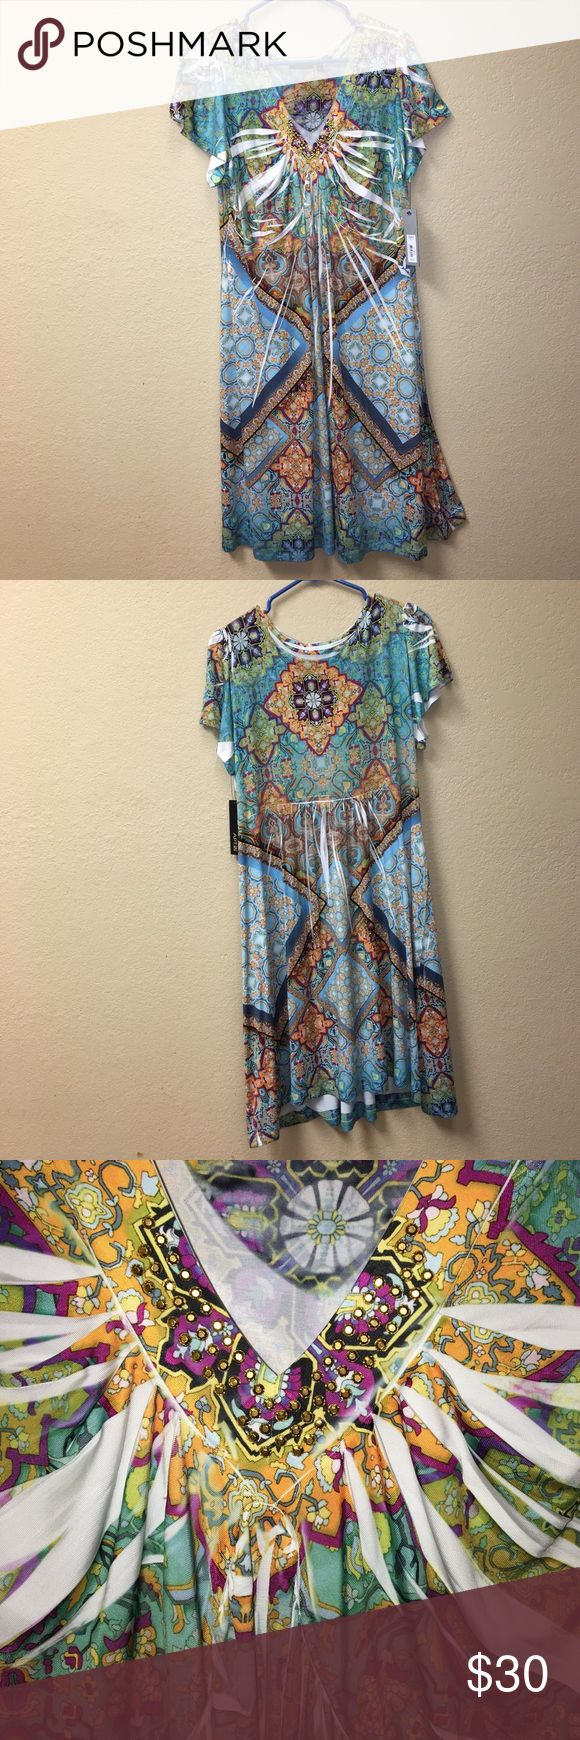 New Apt 9 Summer Casual Dress Light Weight Dress 94 % Poliéster 6 Spandex women's blue and yellow floral v-neck dress Apt. 9 Dresses Mini